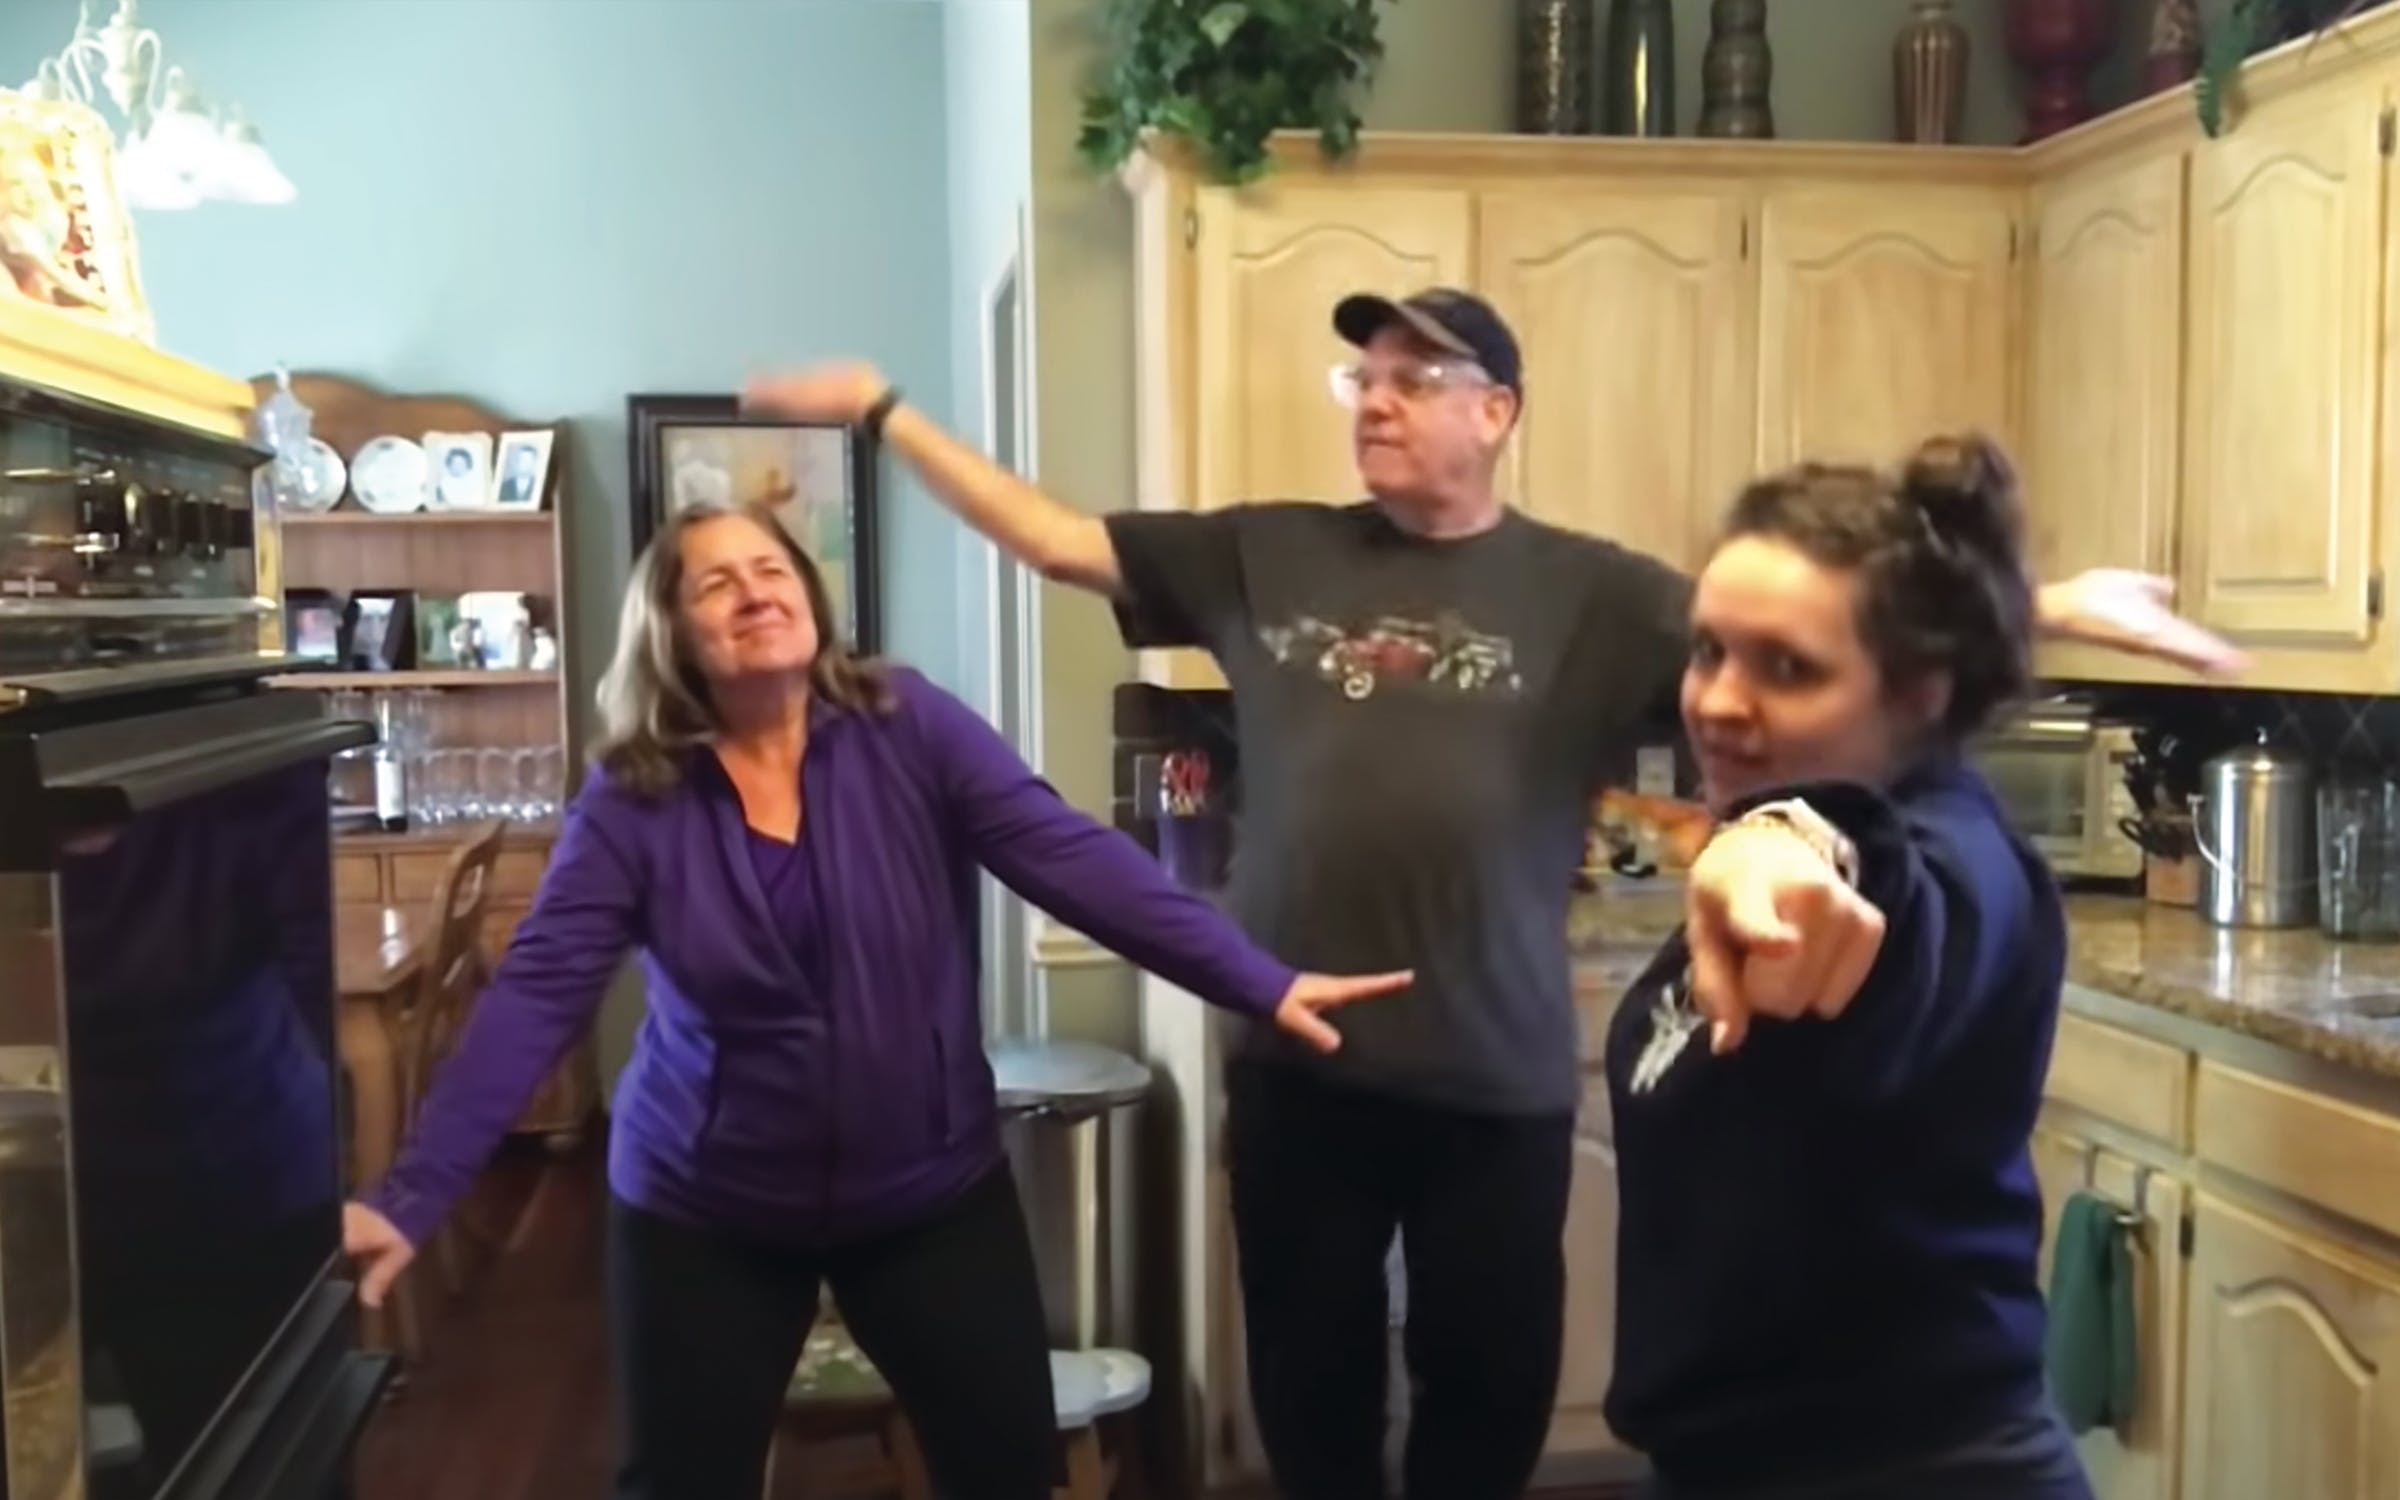 A Dallas family's viral dance video